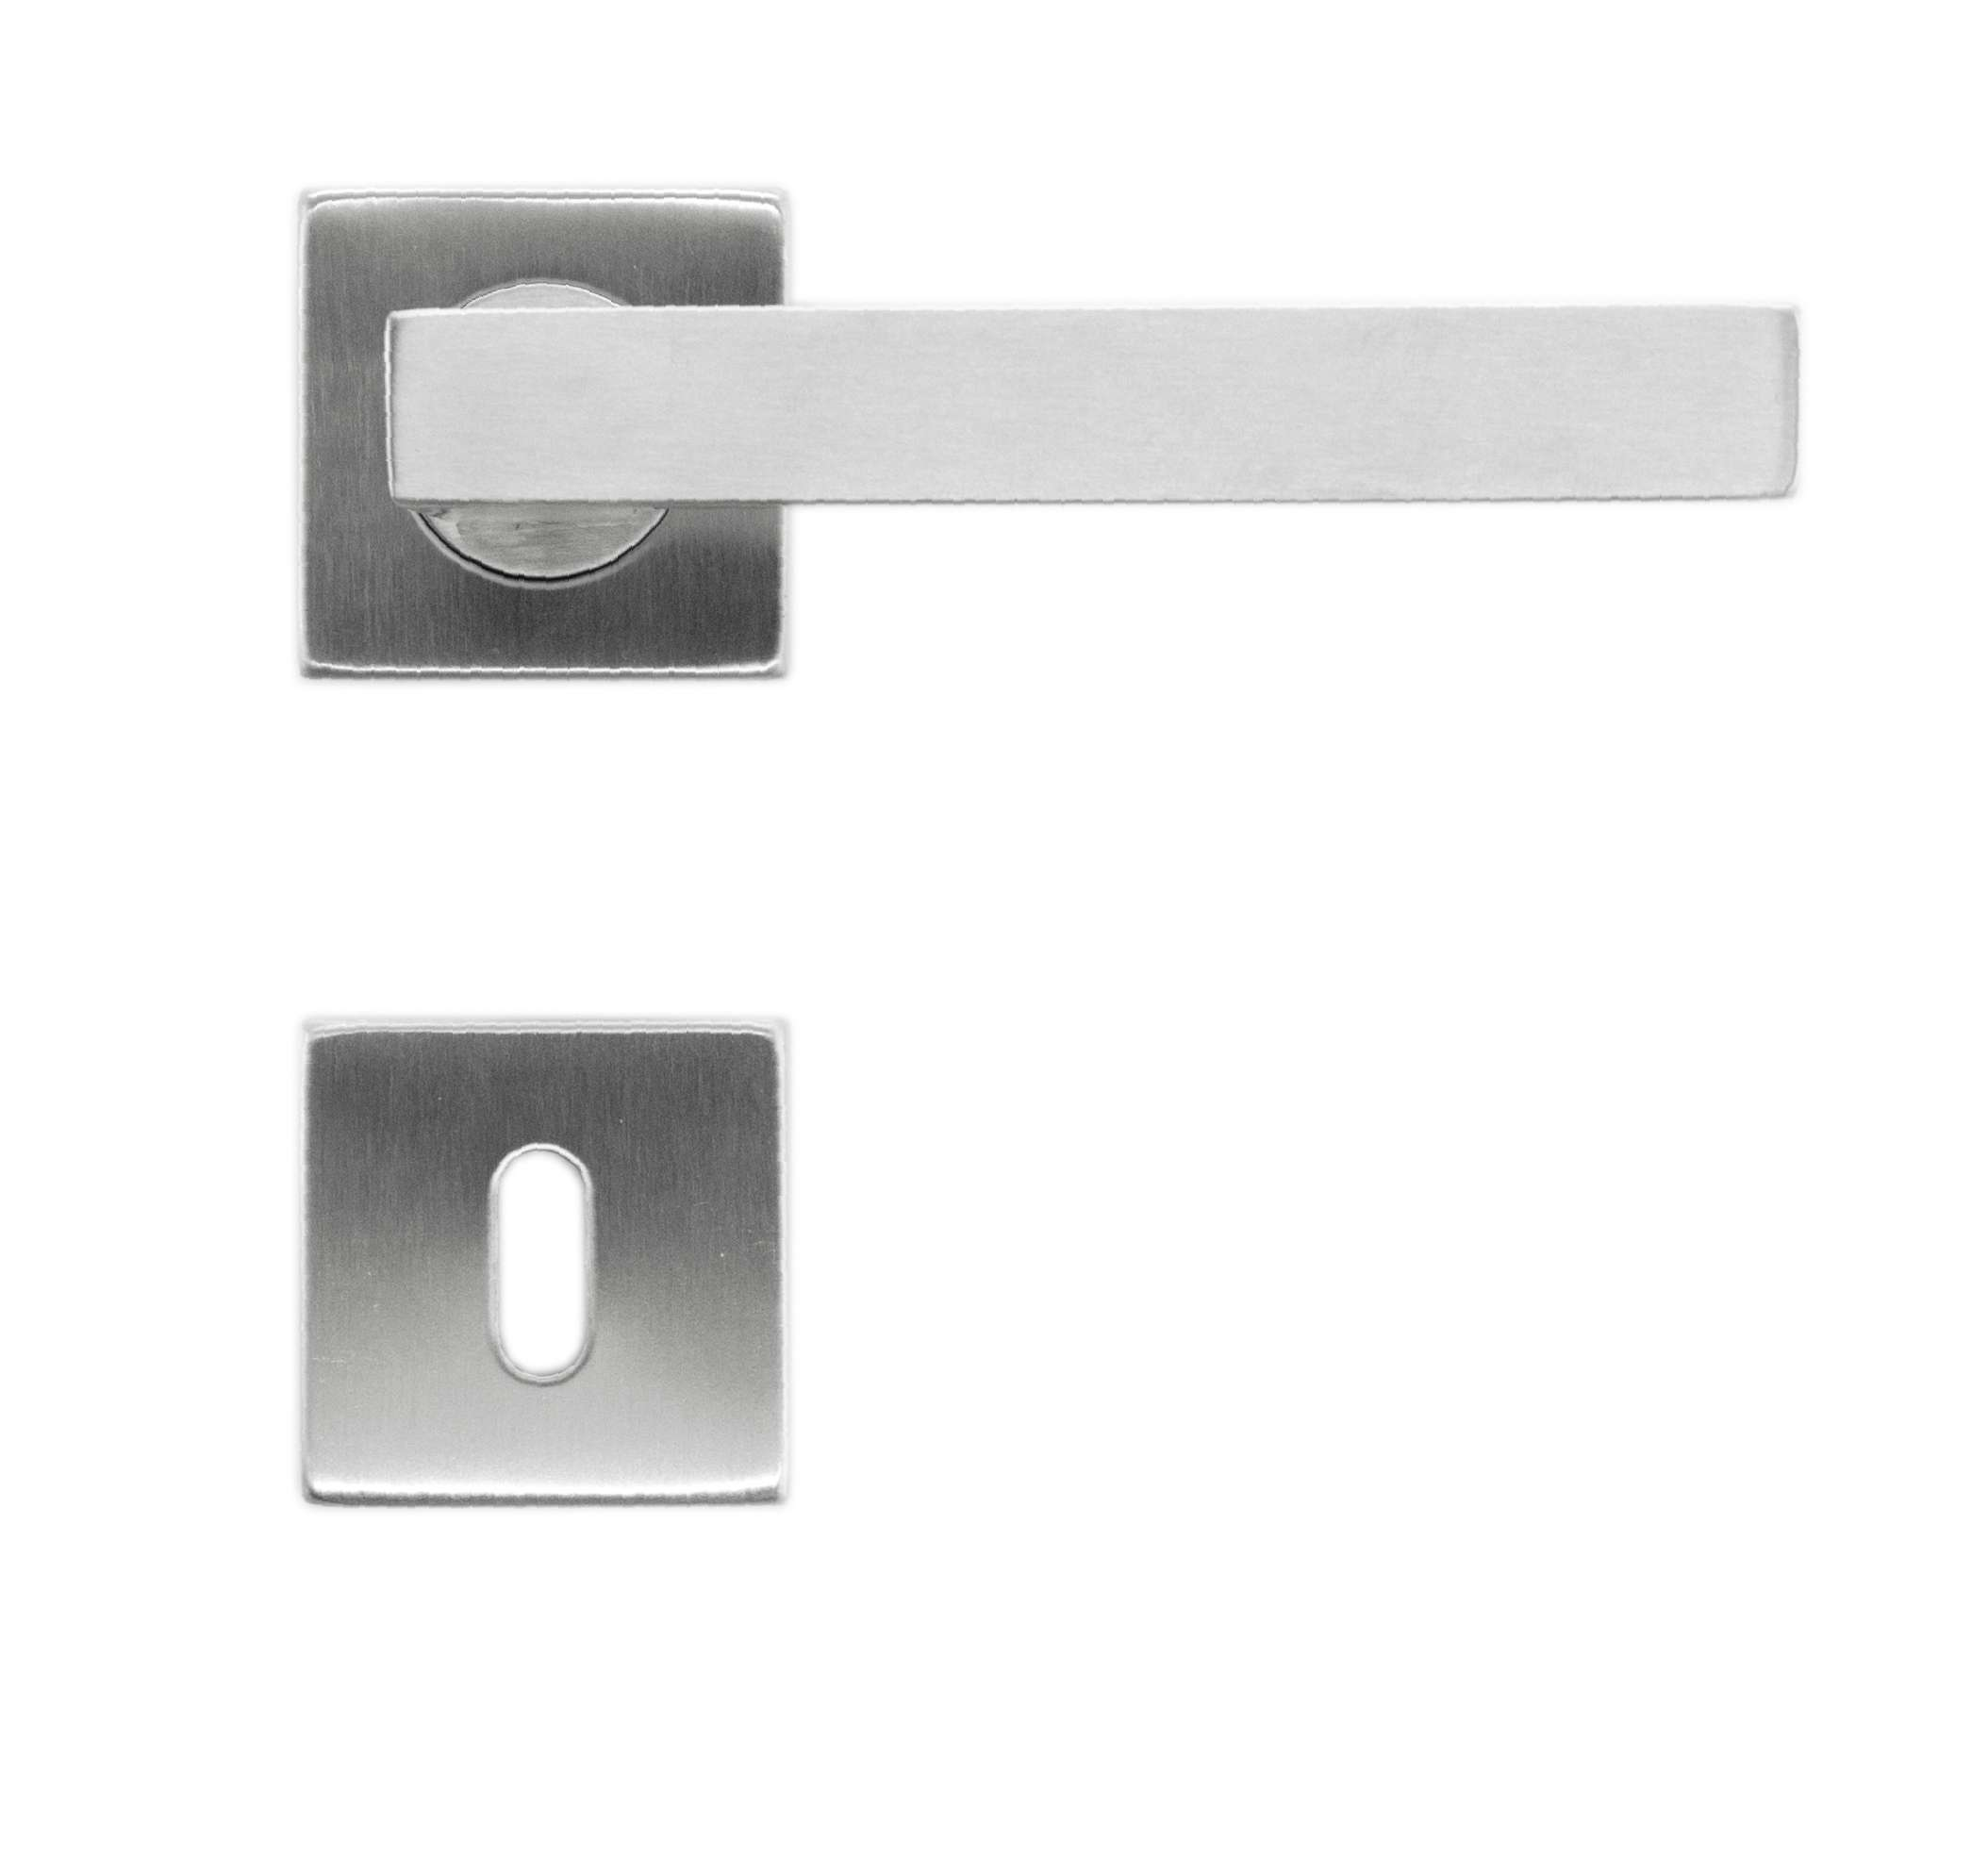 BEQUILLE KUBIC SHAPE 19MM INOX PLUS R+E